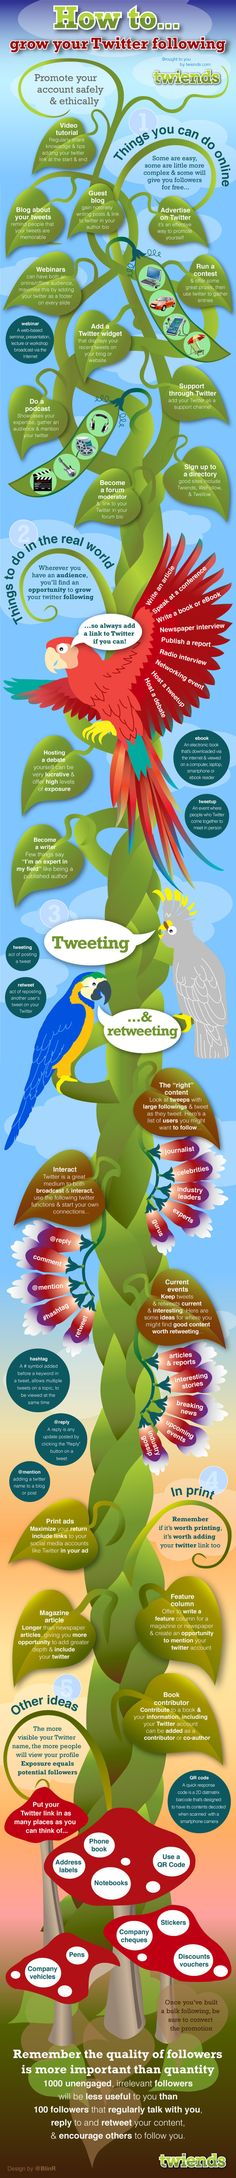 Digital Information World: 9 Infographics To Amplify Your Following on Twitter Facebook Google+ LinkedIn and Pinterest